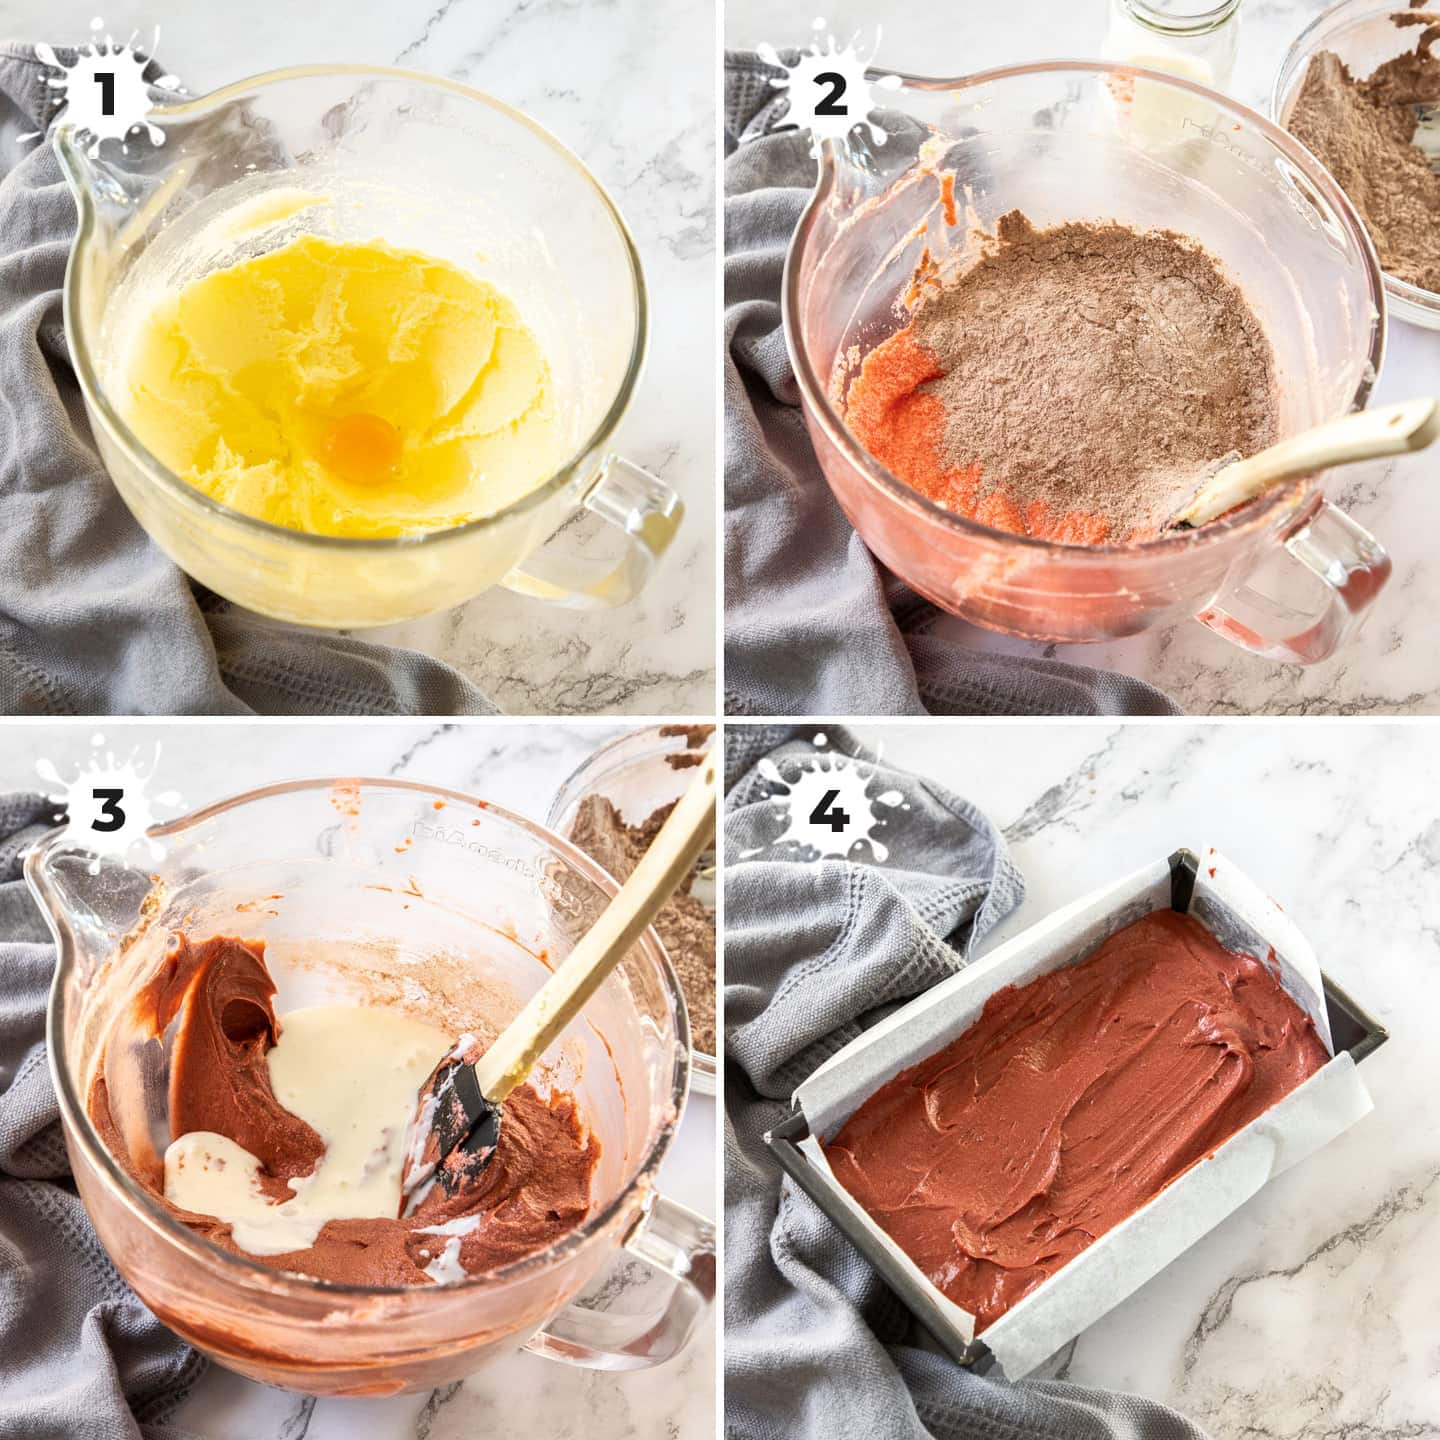 4 images showing batter for the red velvet pound cake being prepared